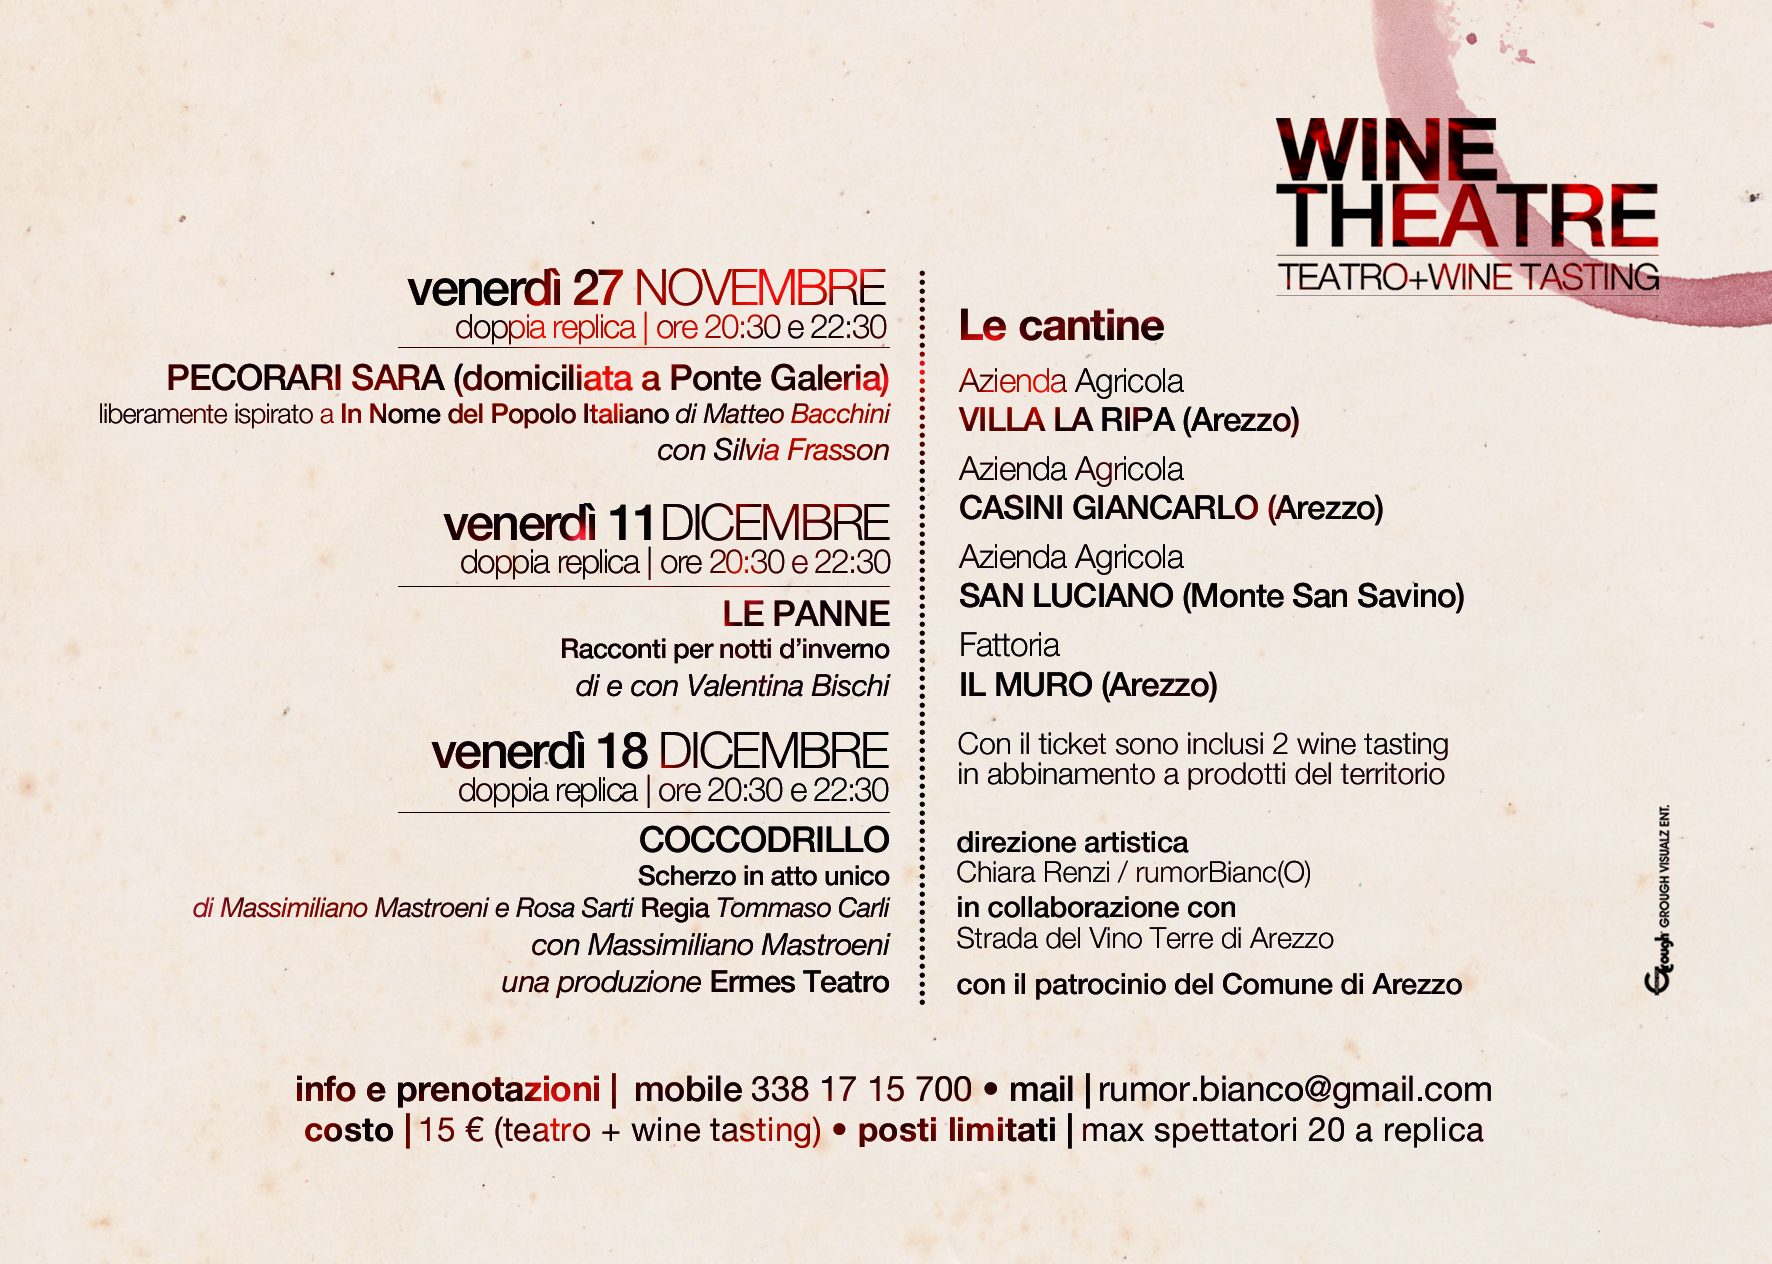 WINE THEATRE CARTOLINA 2015 retro WEB